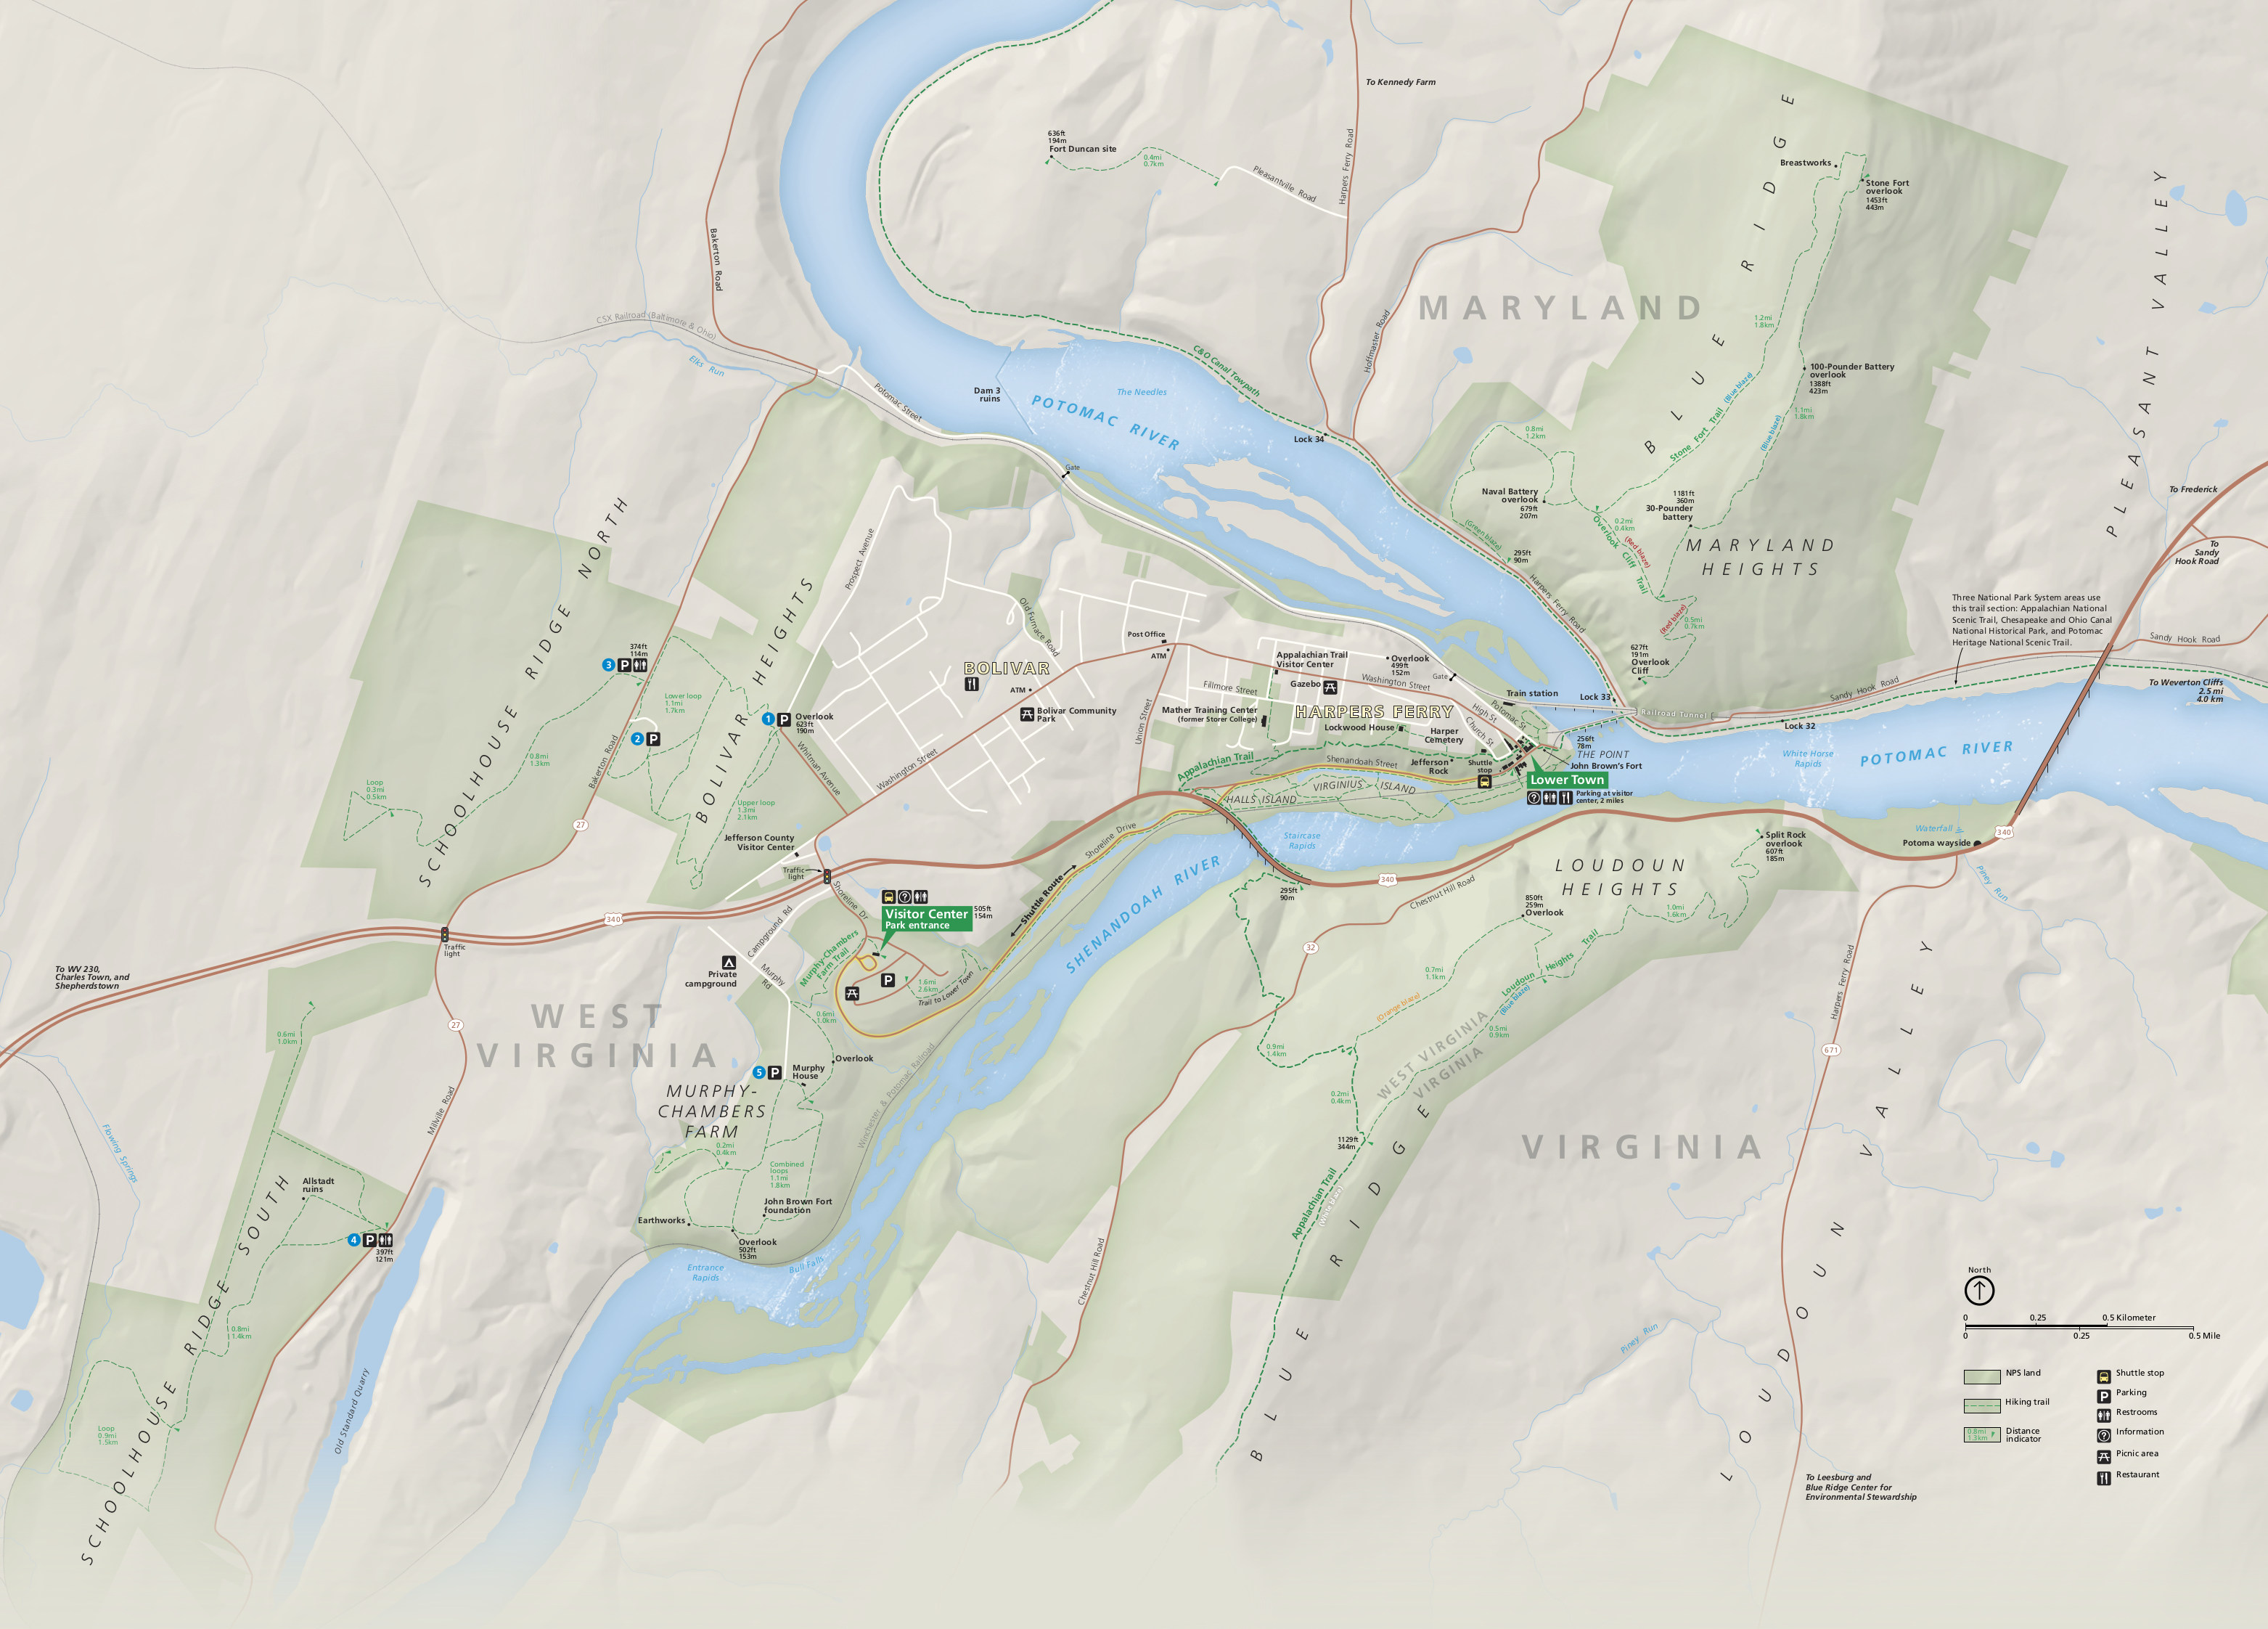 Harpers Ferry Maps NPMapscom just free maps period